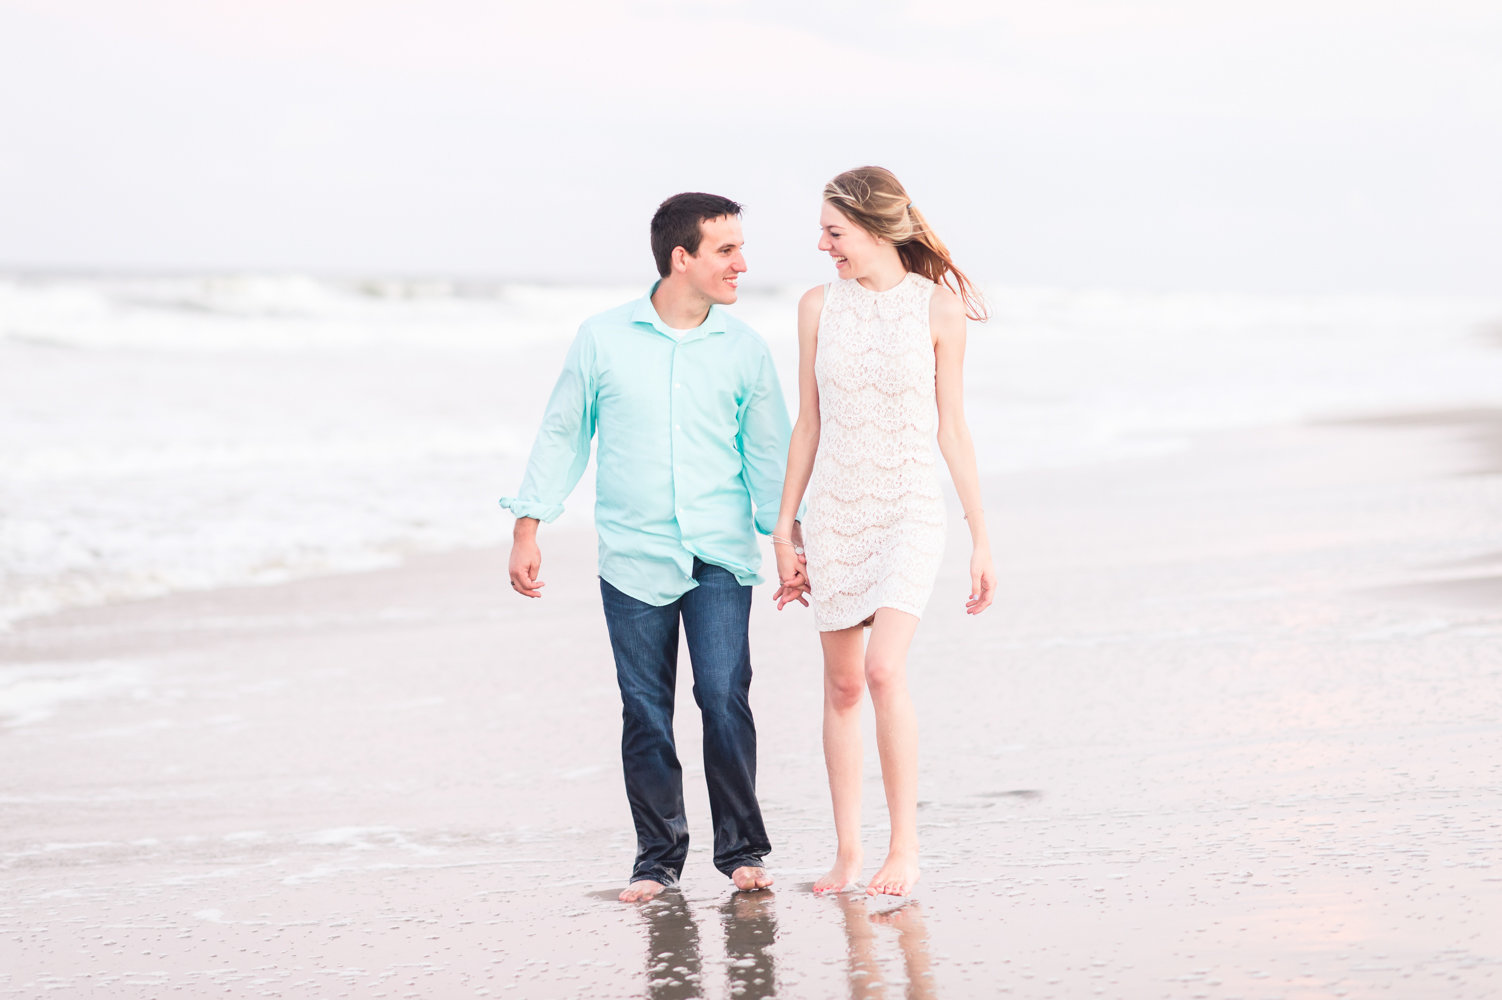 engagement-portraits-christina-forbes-photography-55